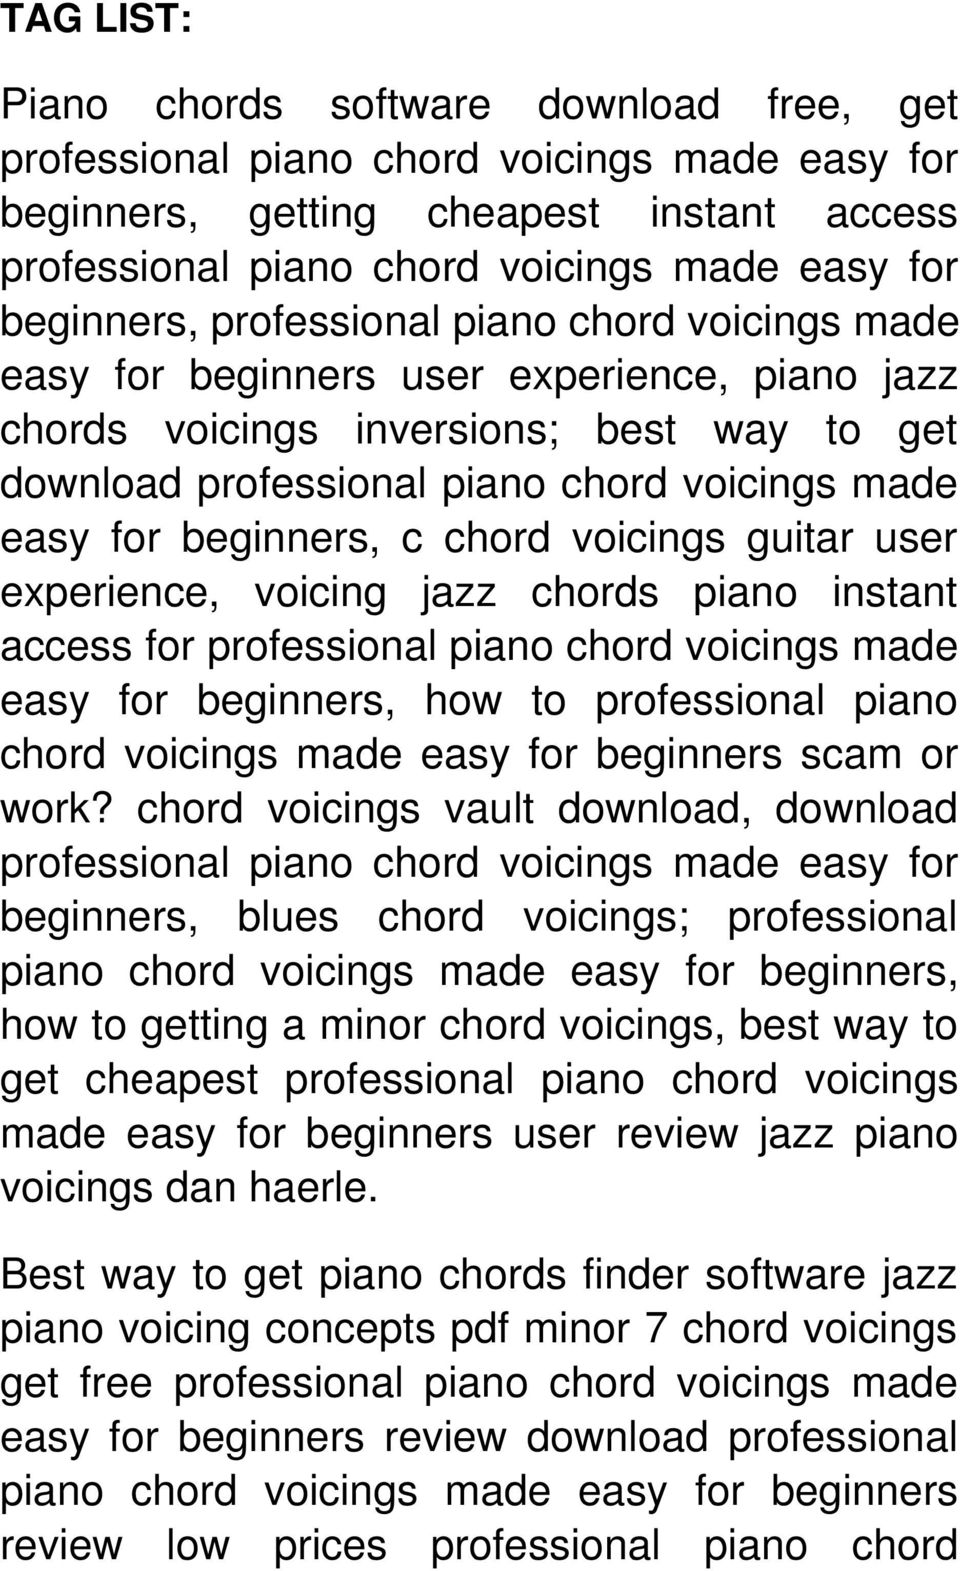 Professional piano tuning application pt-a1 ipa cracked for ios.